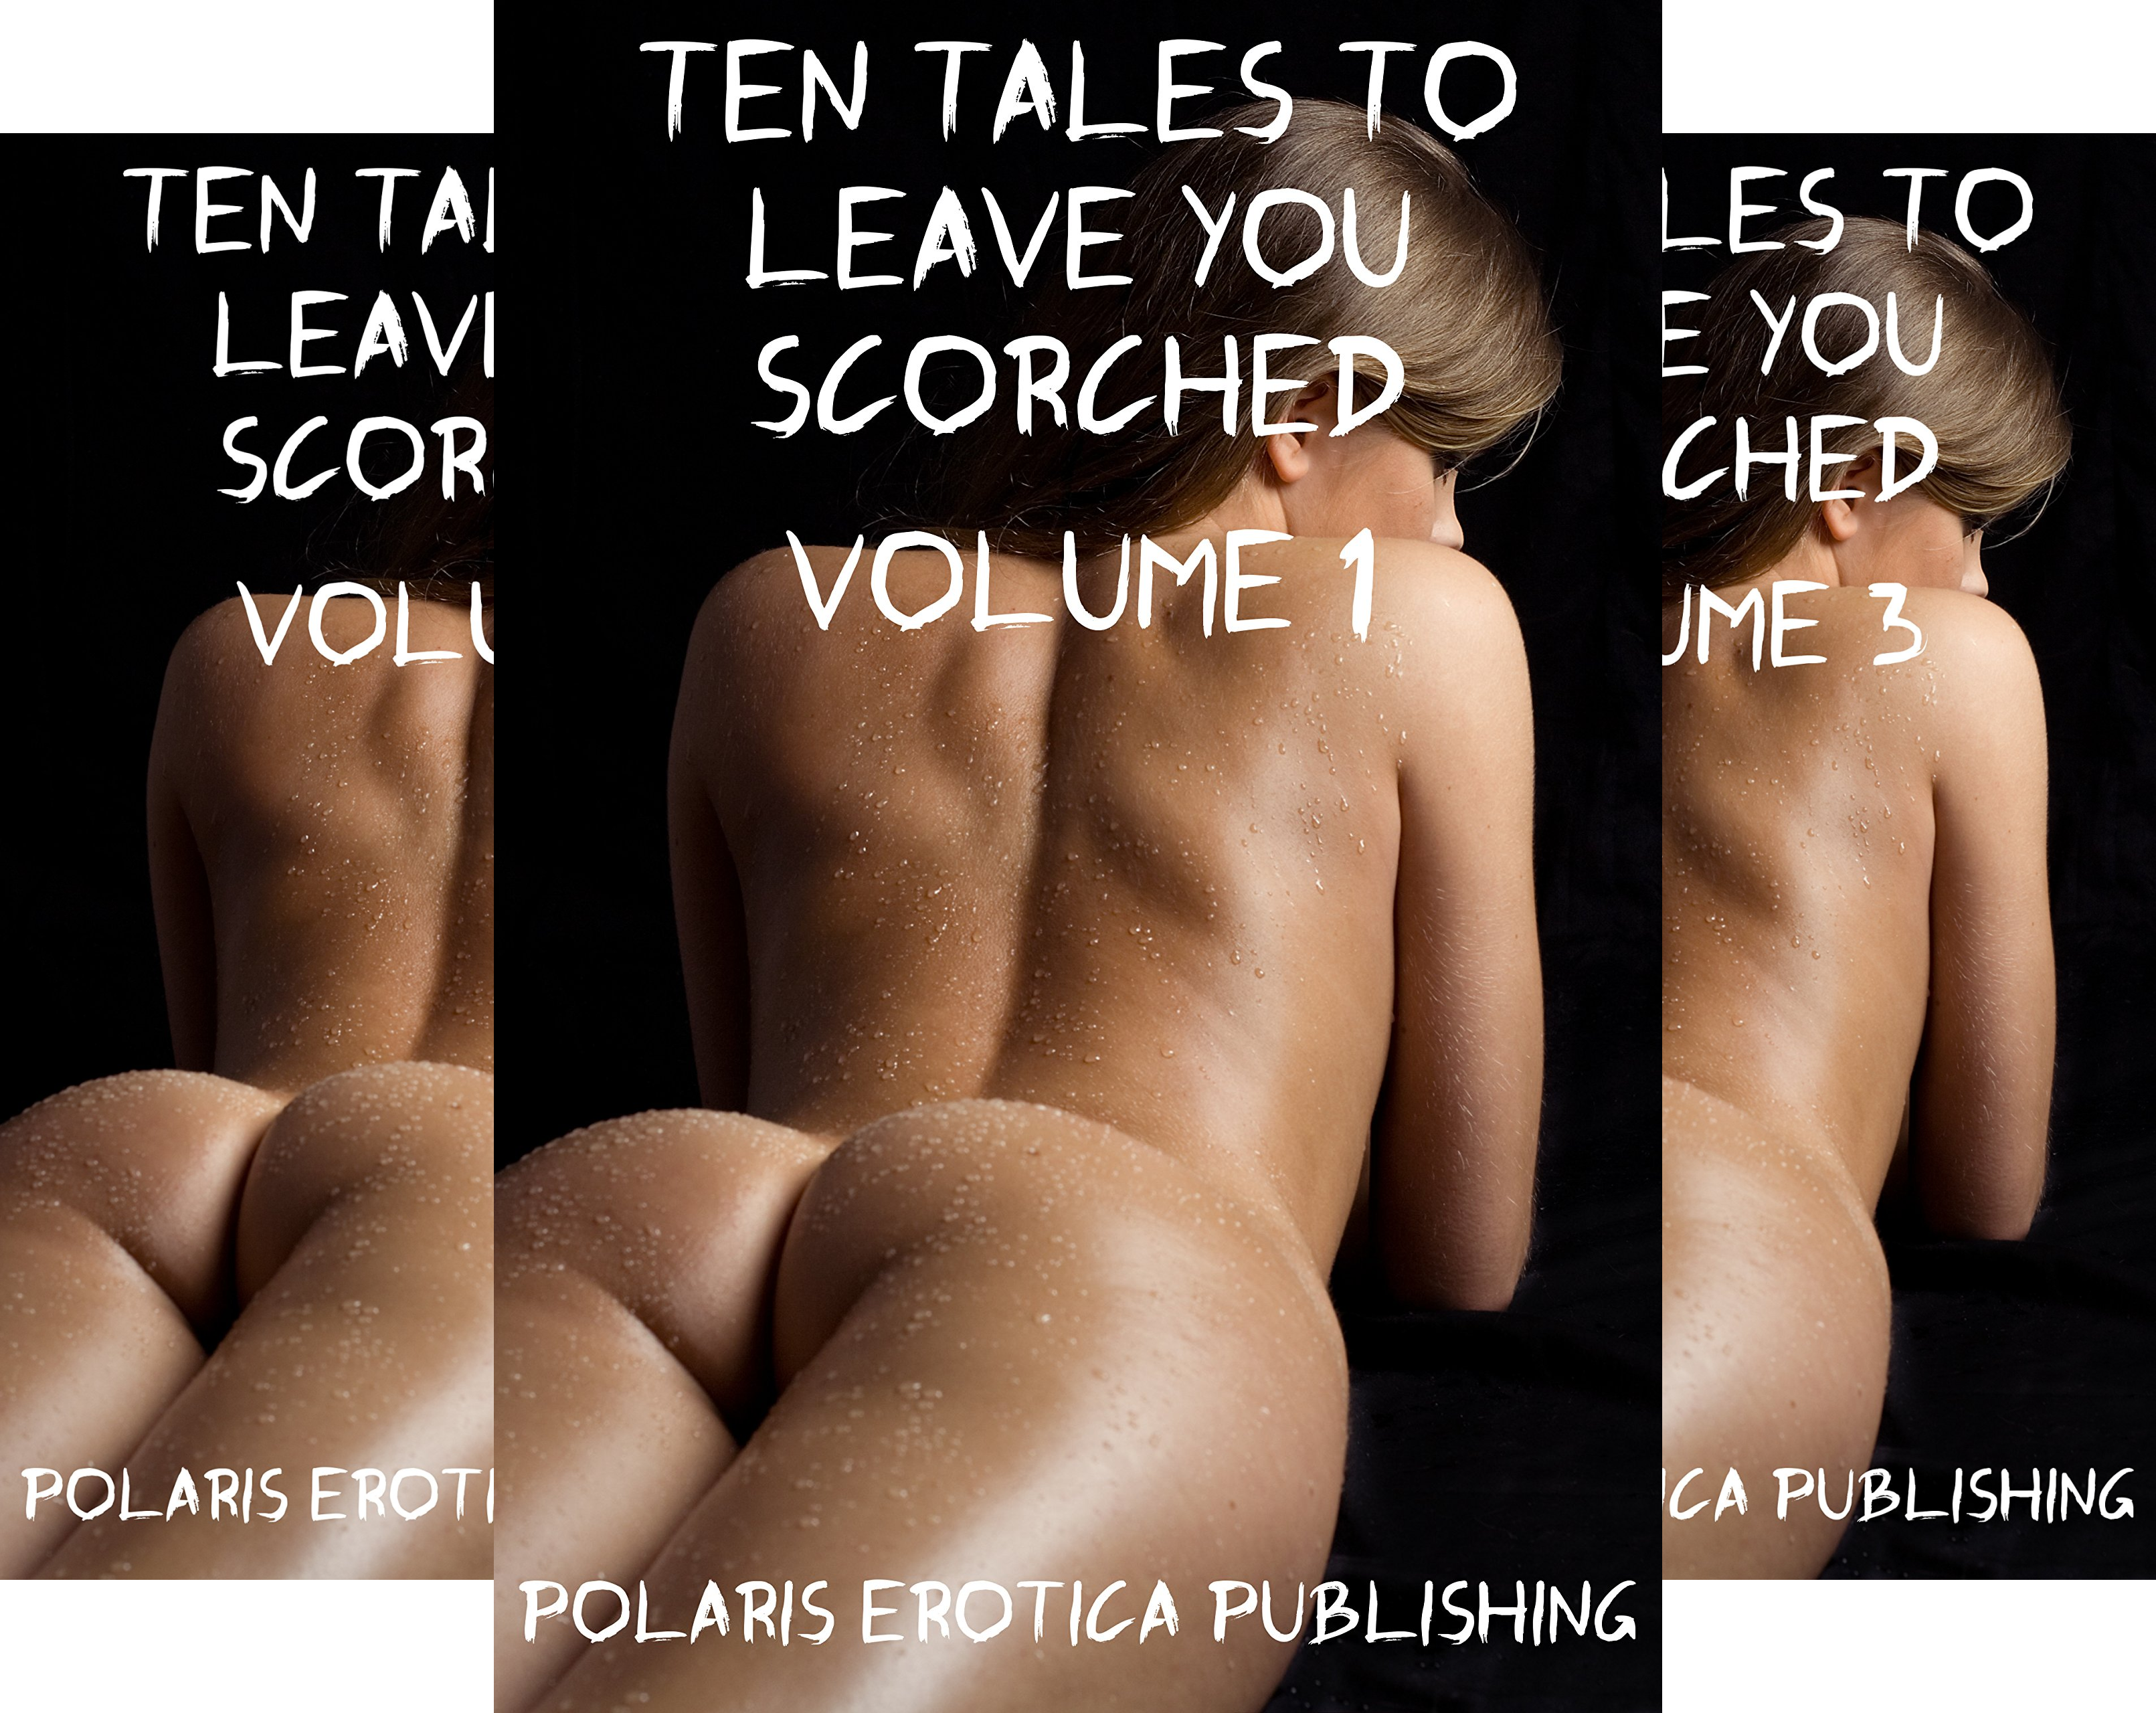 Ten Tales to Leave You Scorched (3 Book Series)